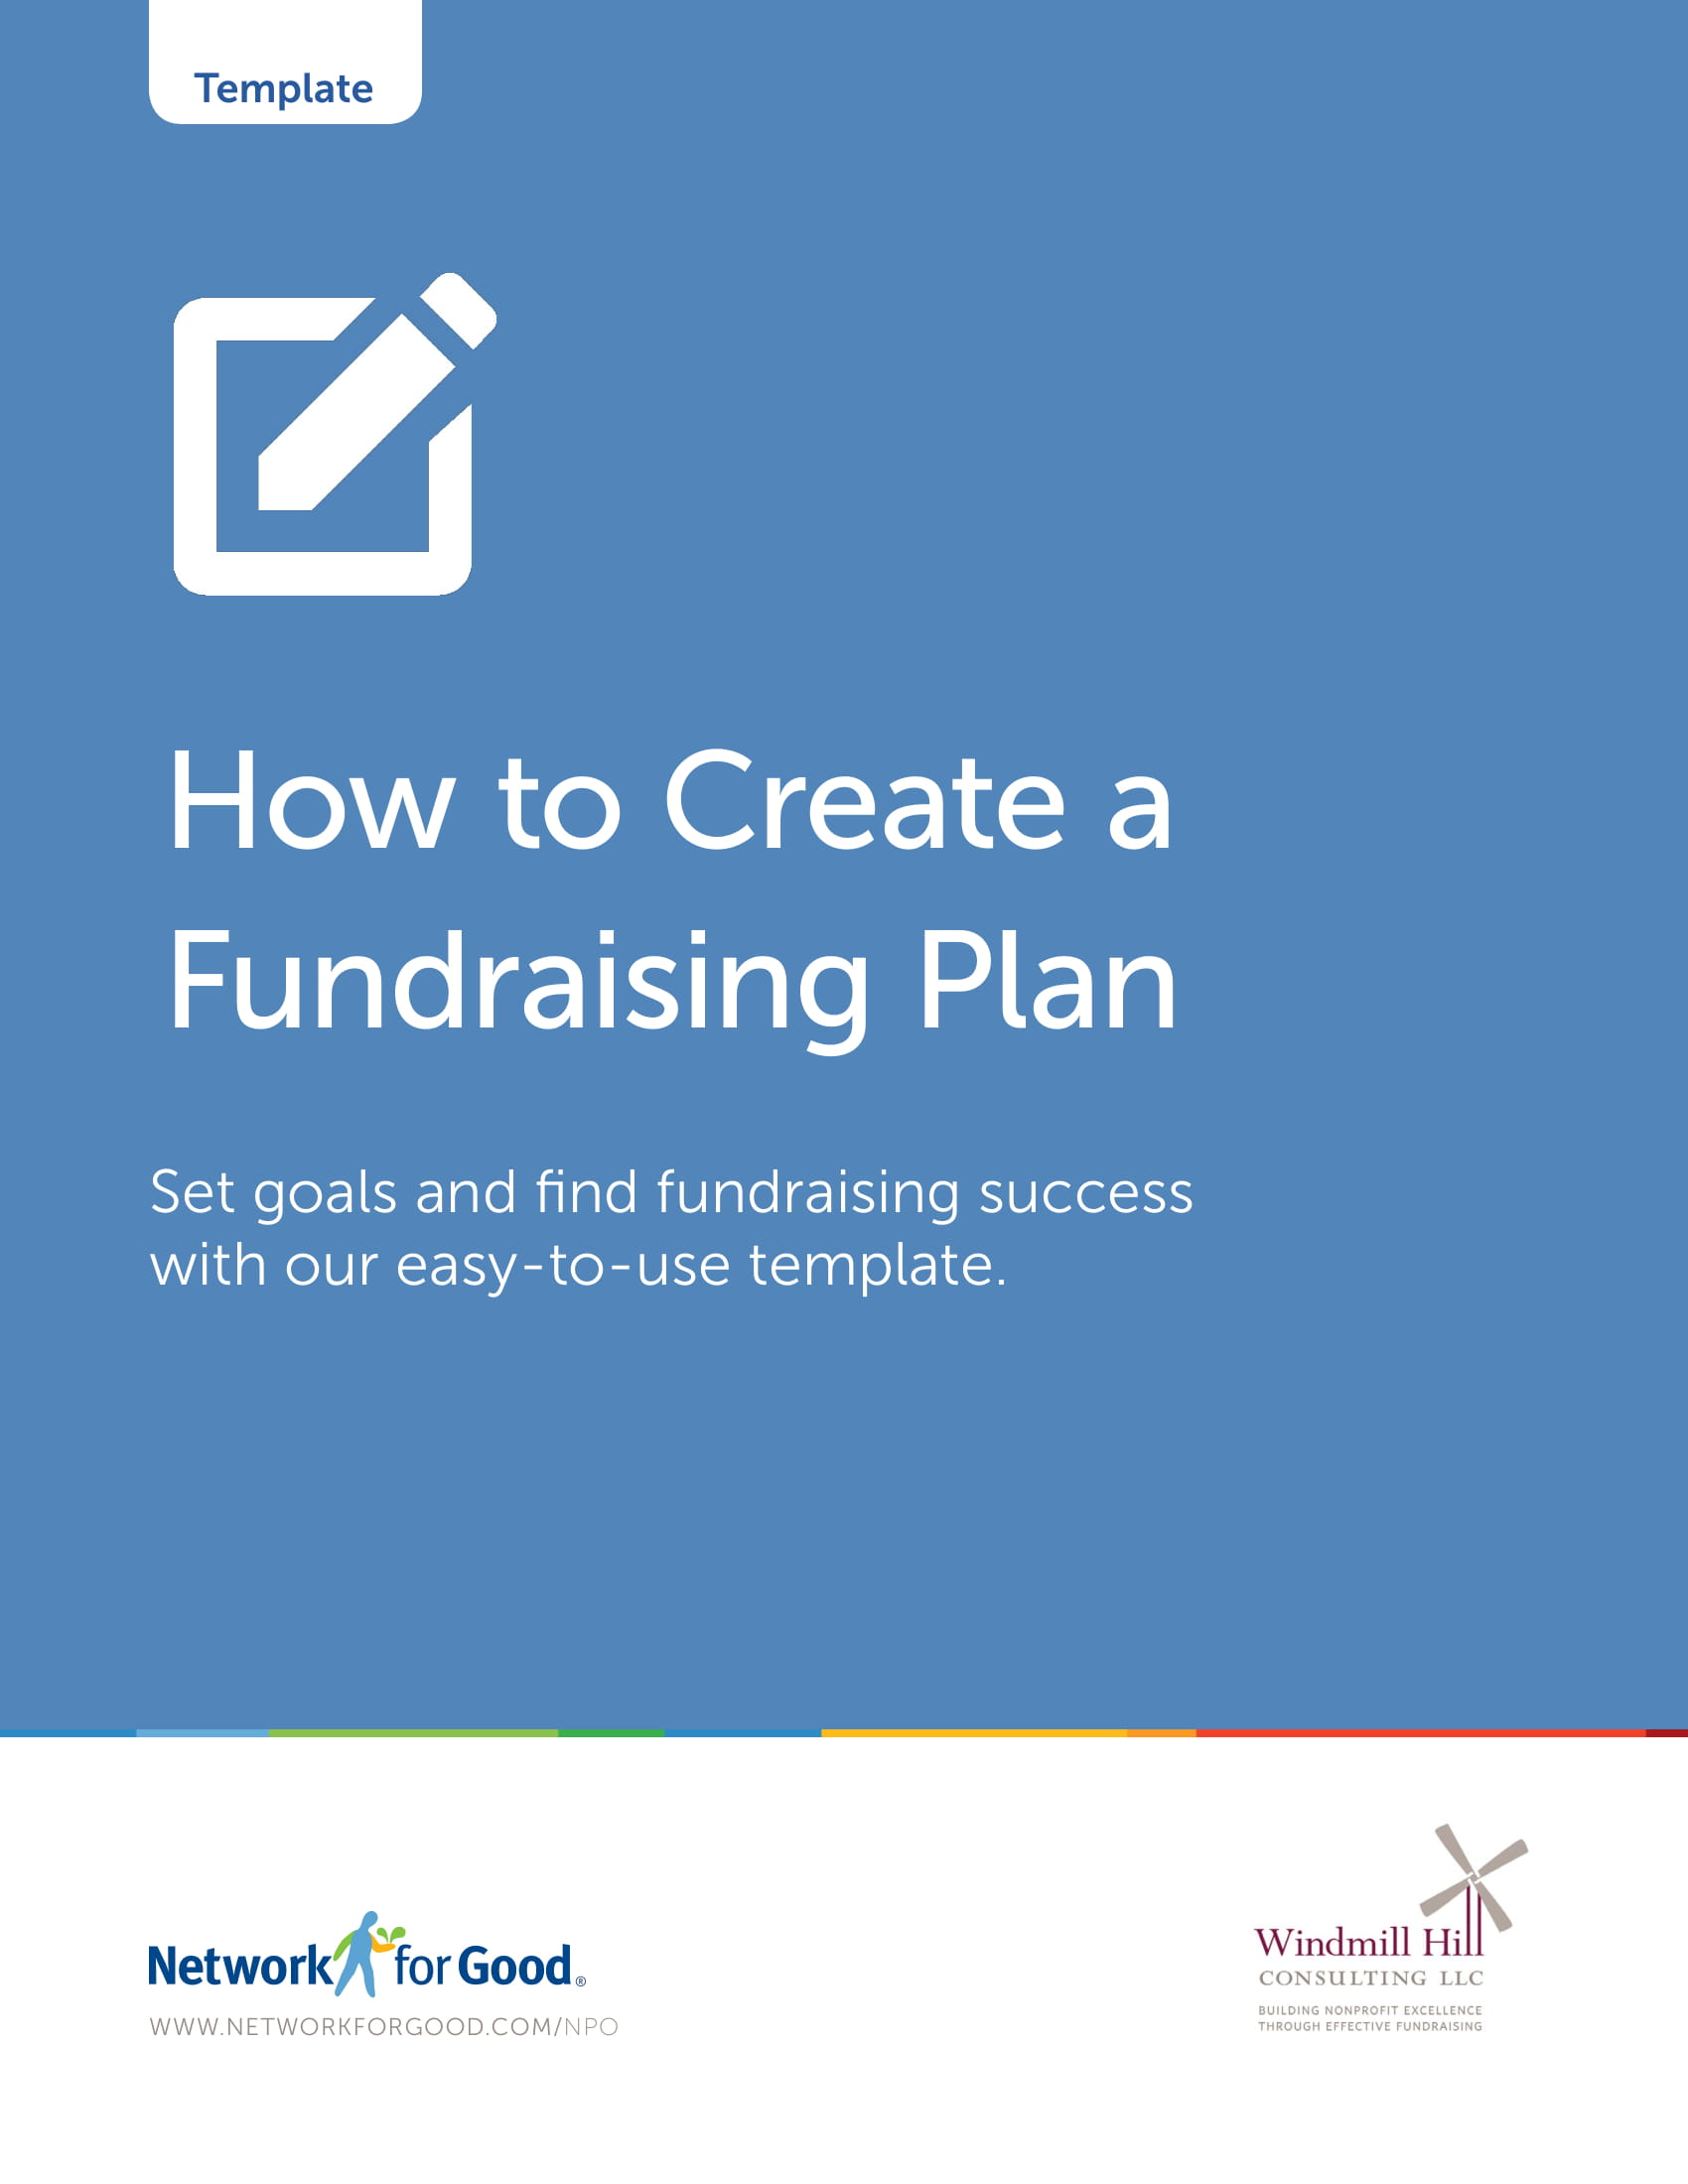 fundraising plan guide example 01